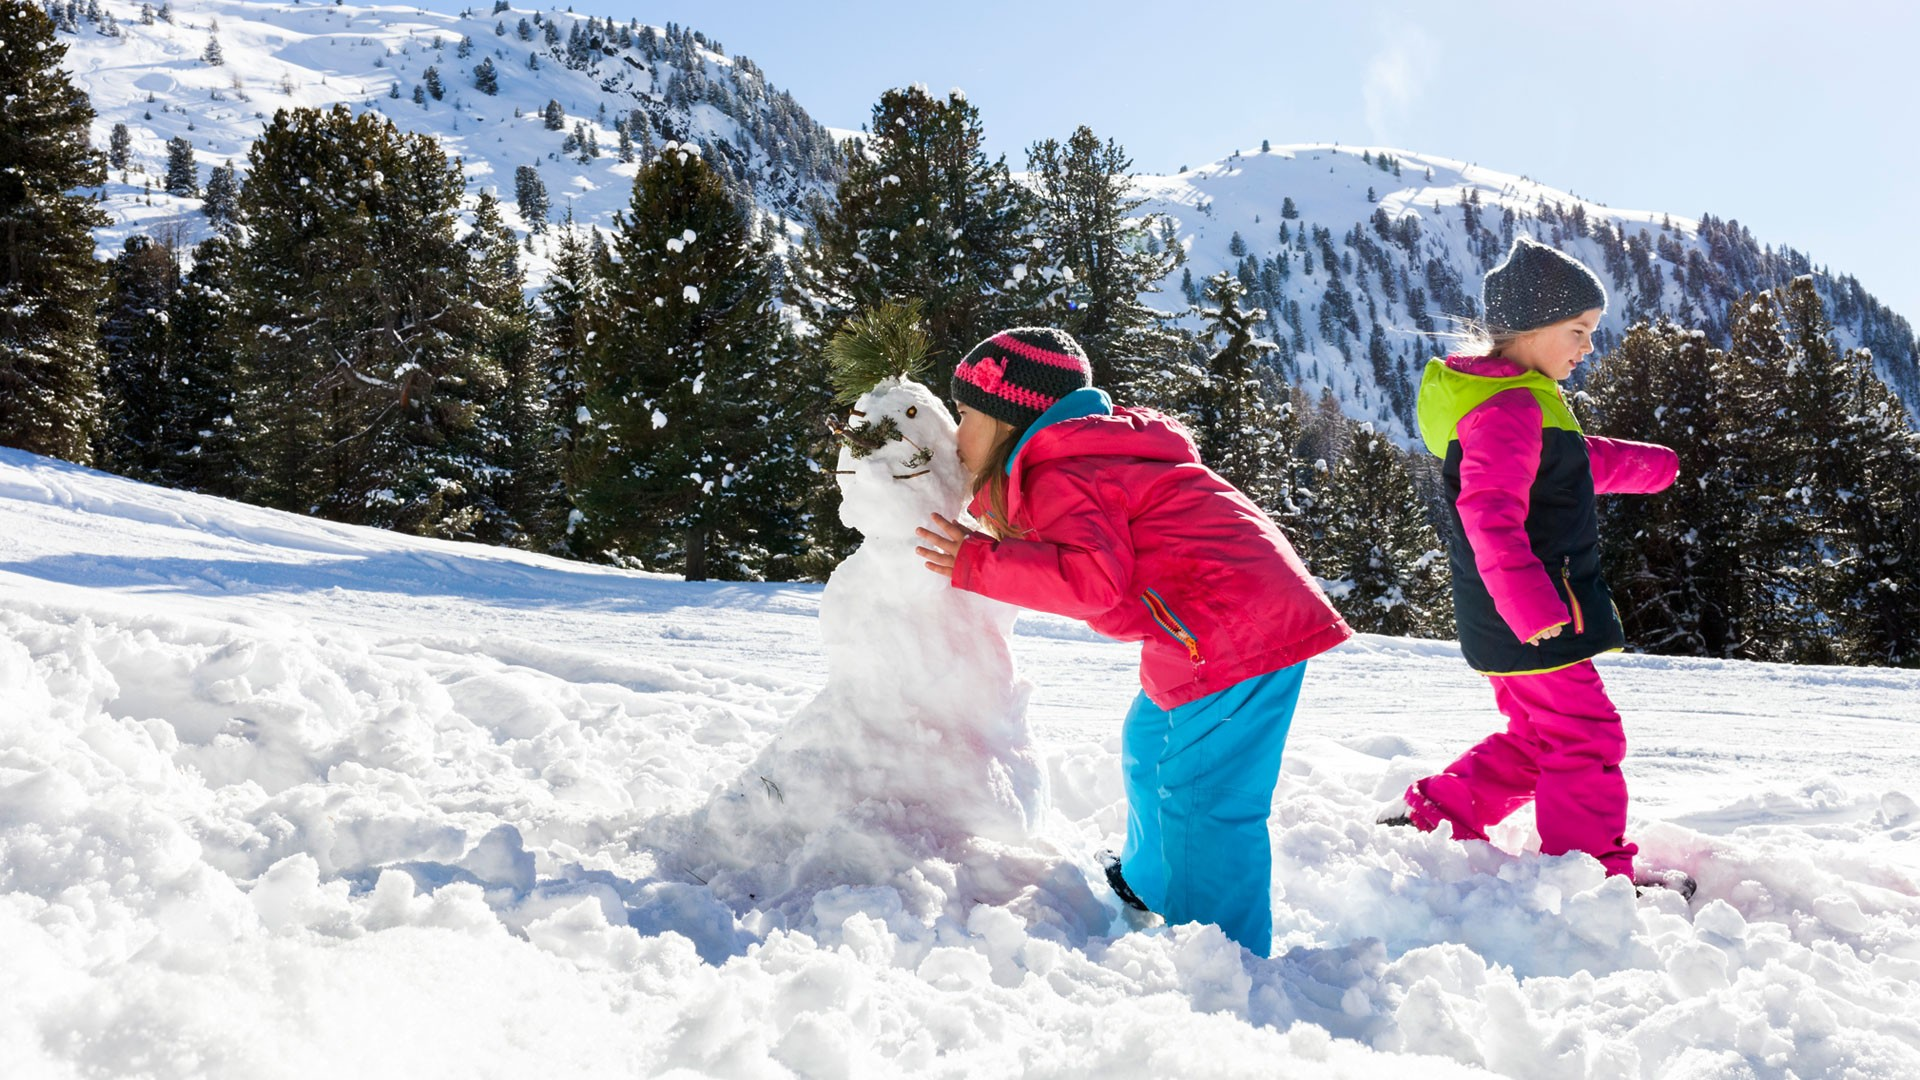 Spielplatz Schnee: playful & child-oriented ski courses ...